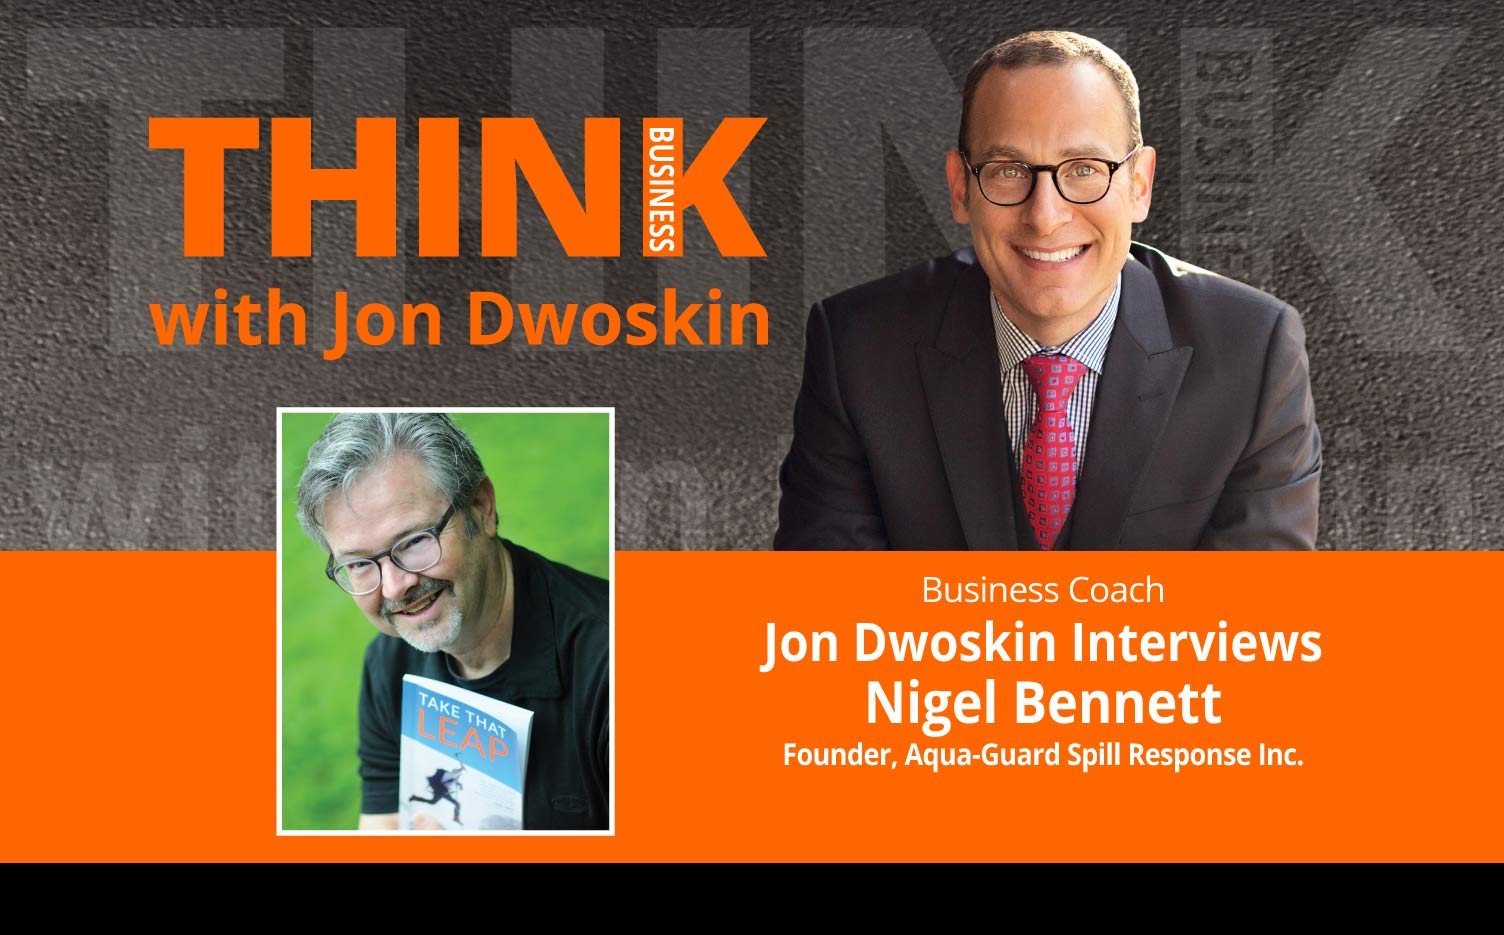 THINK Business Podcast: Jon Dwoskin Interviews Nigel Bennett, Founder, Aqua-Guard Spill Response Inc.